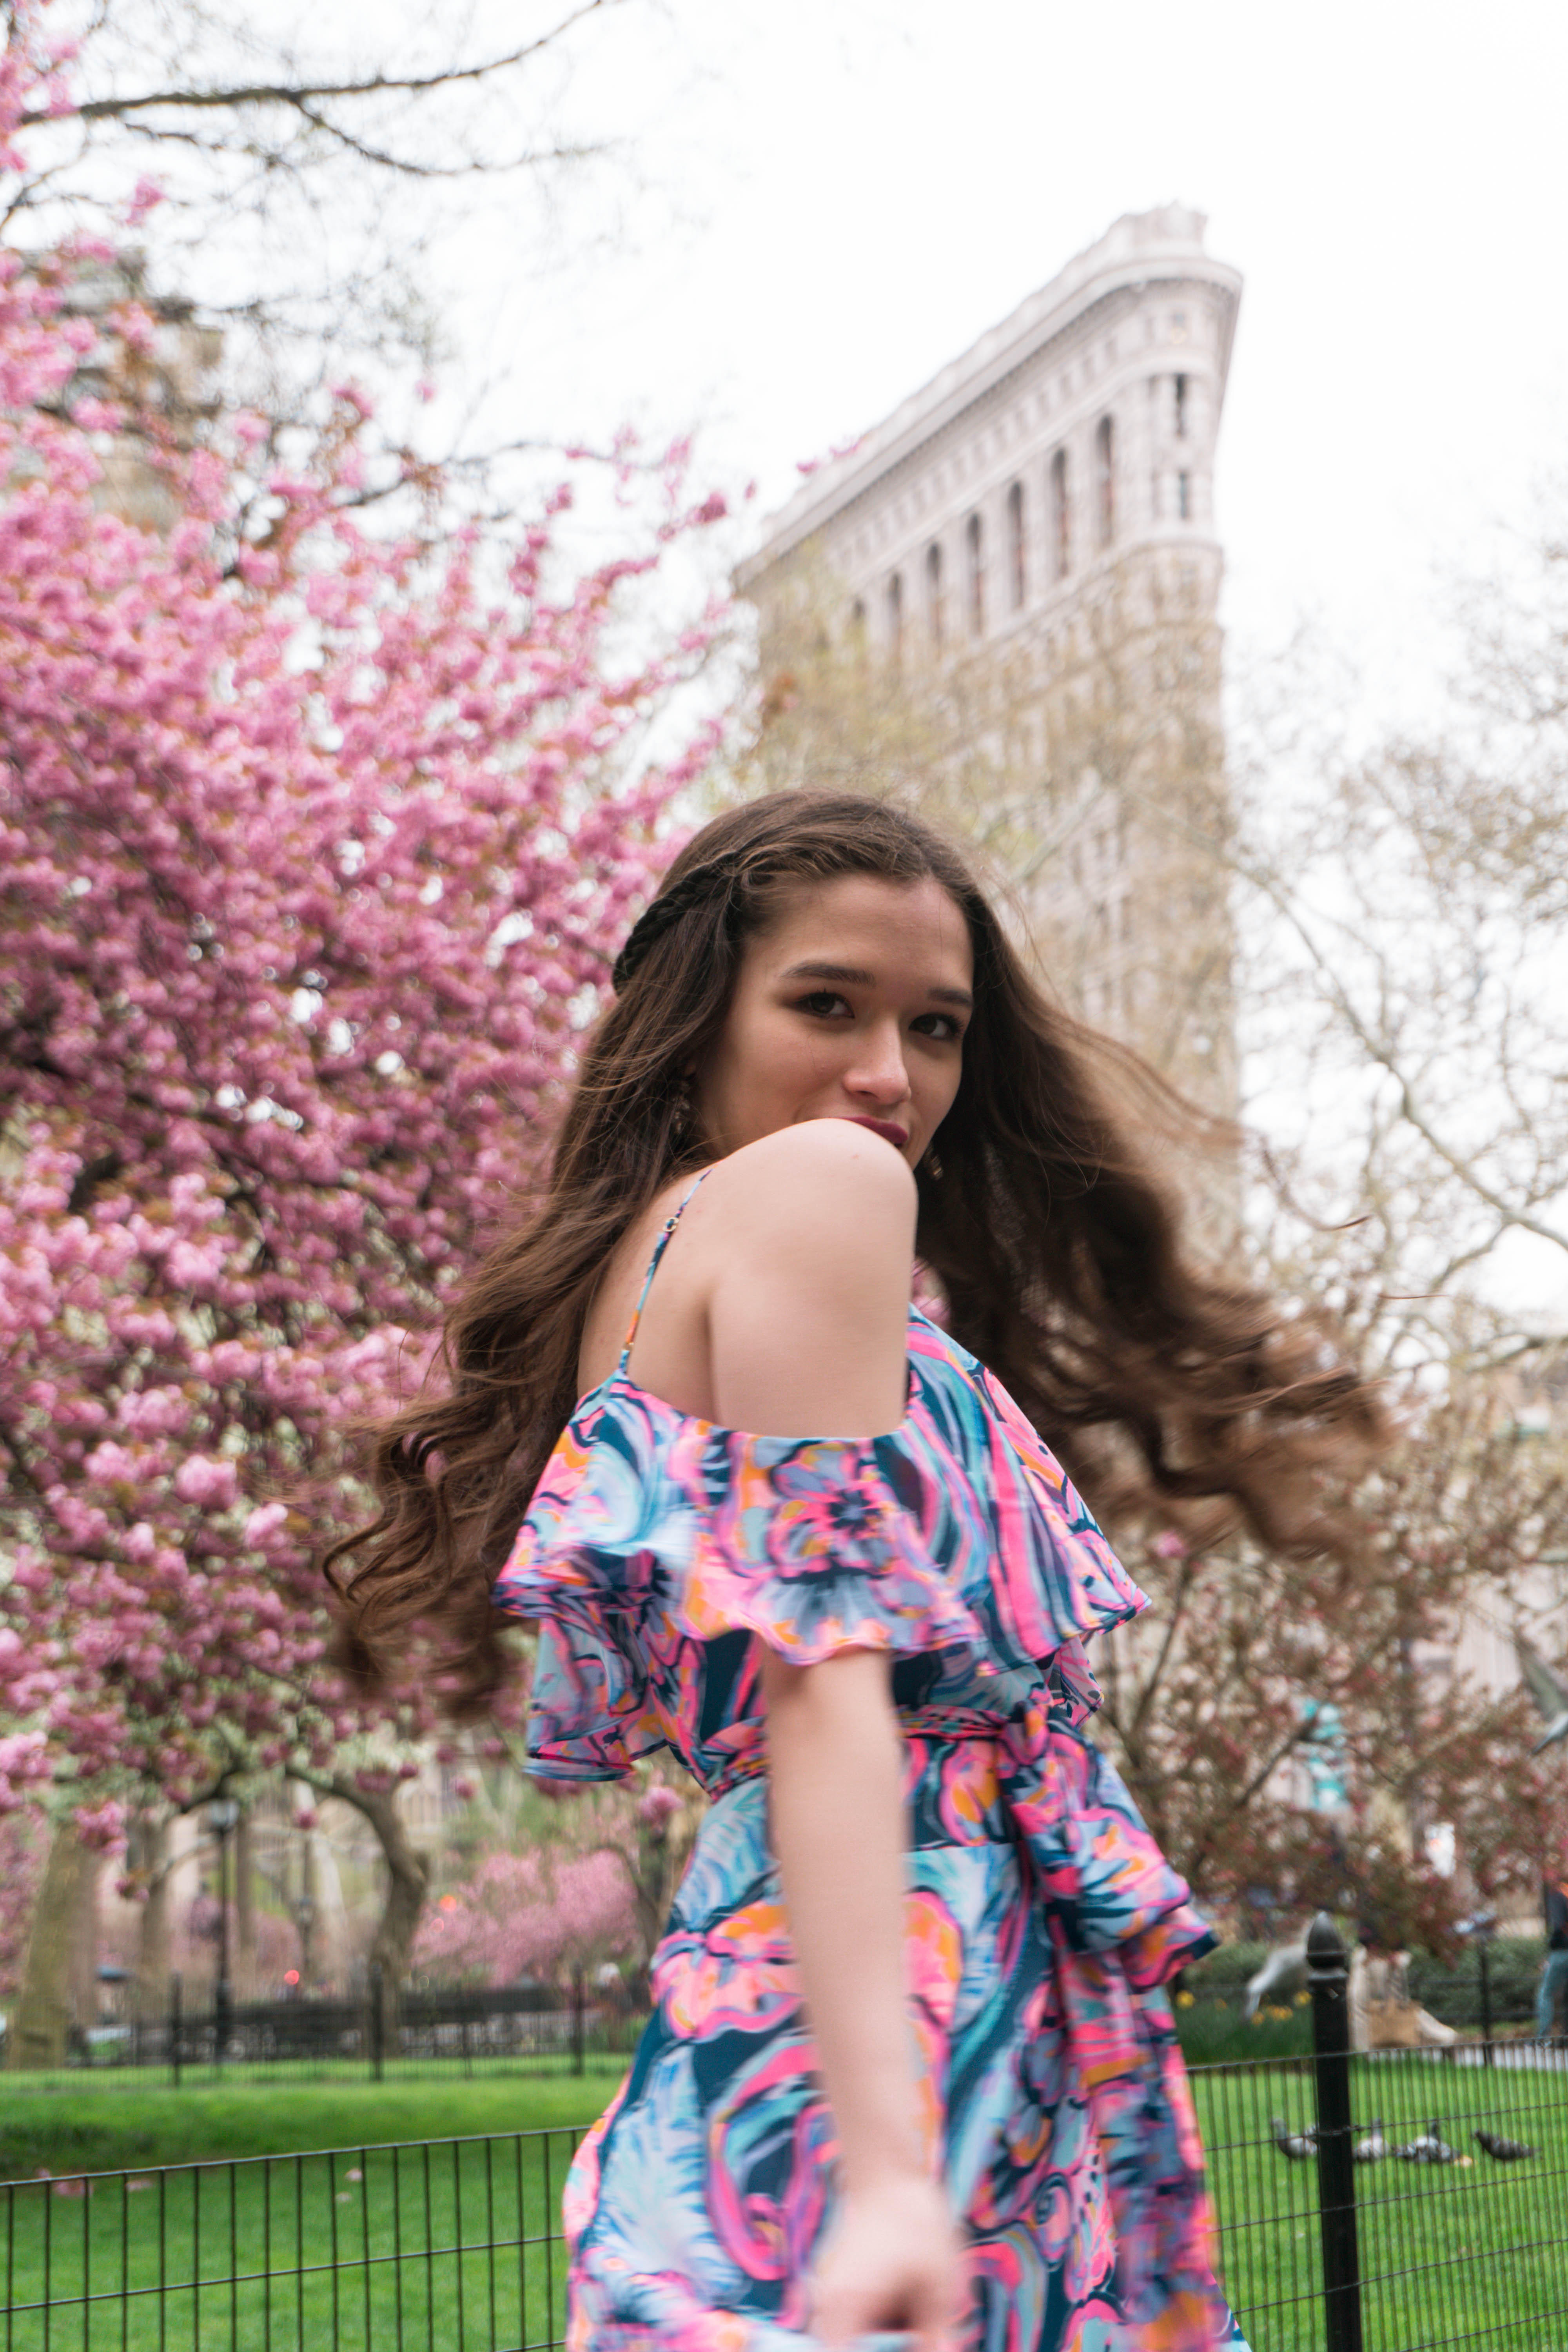 Lilly Pulitzer Marianna Dress in Boho Bateau Outside of the NYC Flatiron Building cherry blossom trees flowering blooms spring new york city wedding guest dress outfit ideas midi floral wrap dress with ruffle long brown hair curled brunette in gold strap metallic chunky heels madison square park may asian american trendy womens fashion inspiration inspo what to wear summer outdoor wedding event party target cheap shoes a new day pink blue purple orange green spinning twirling around movement portrait photography